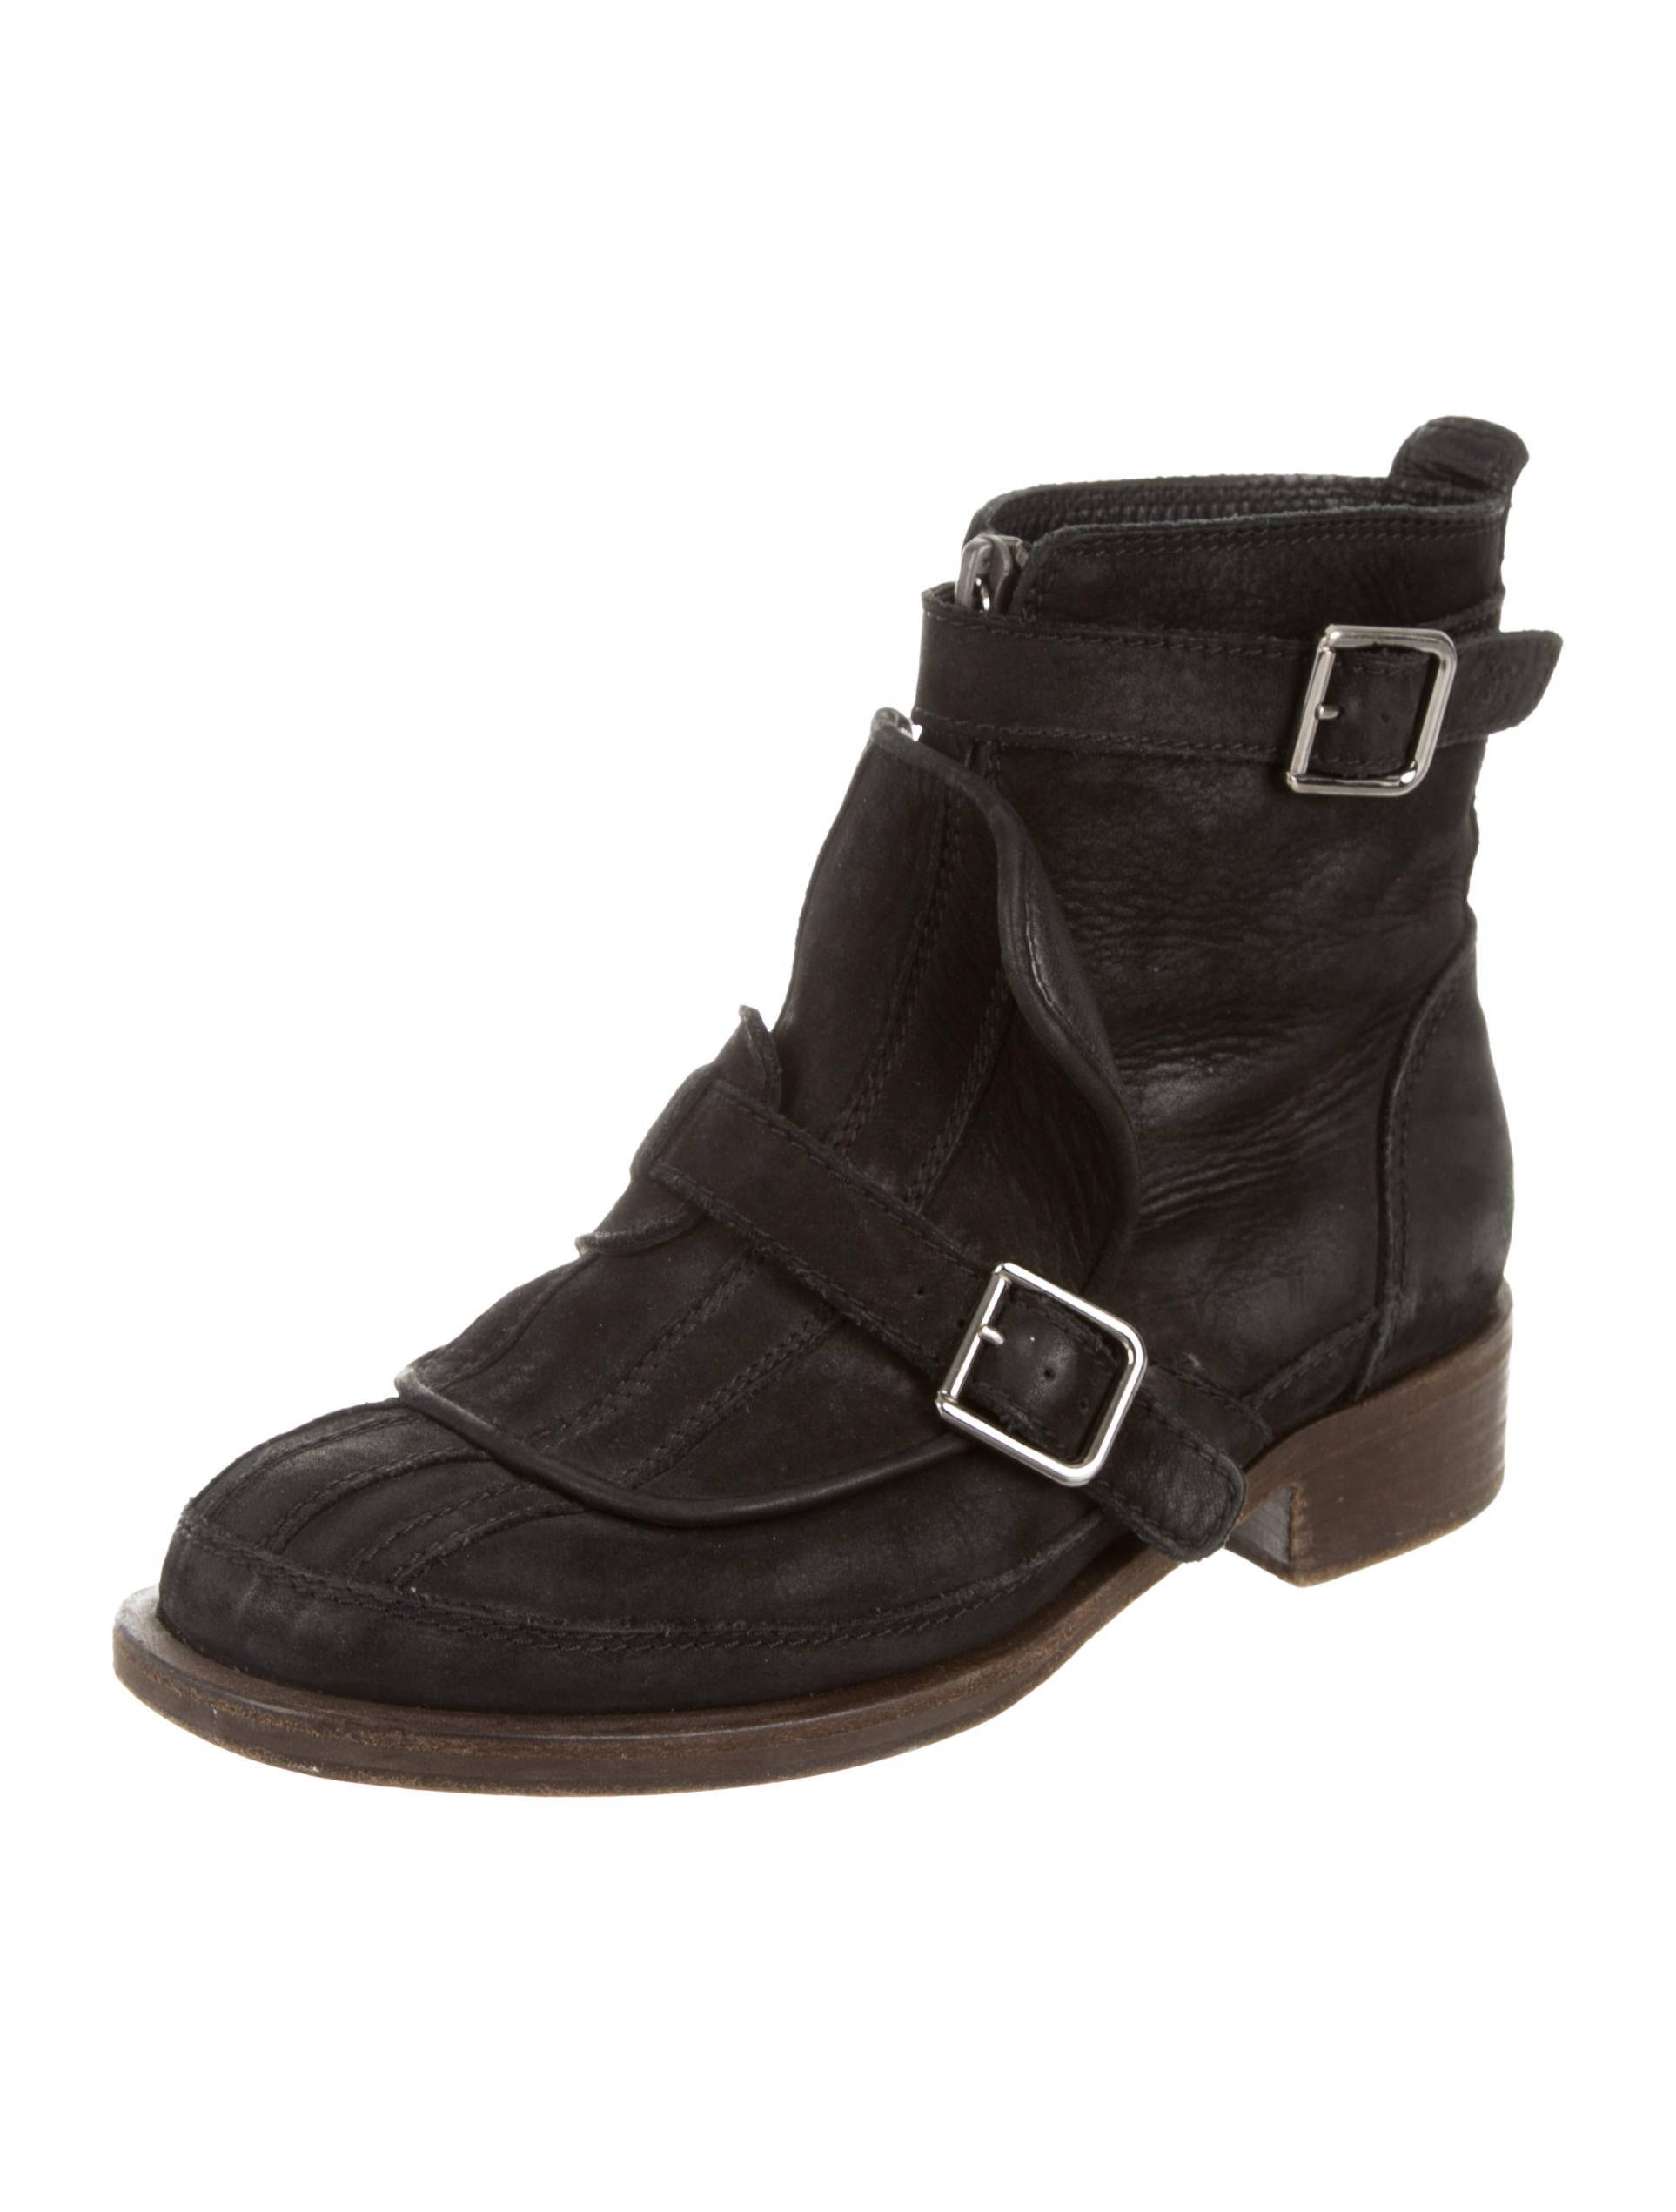 chanel suede toe ankle boots shoes cha93372